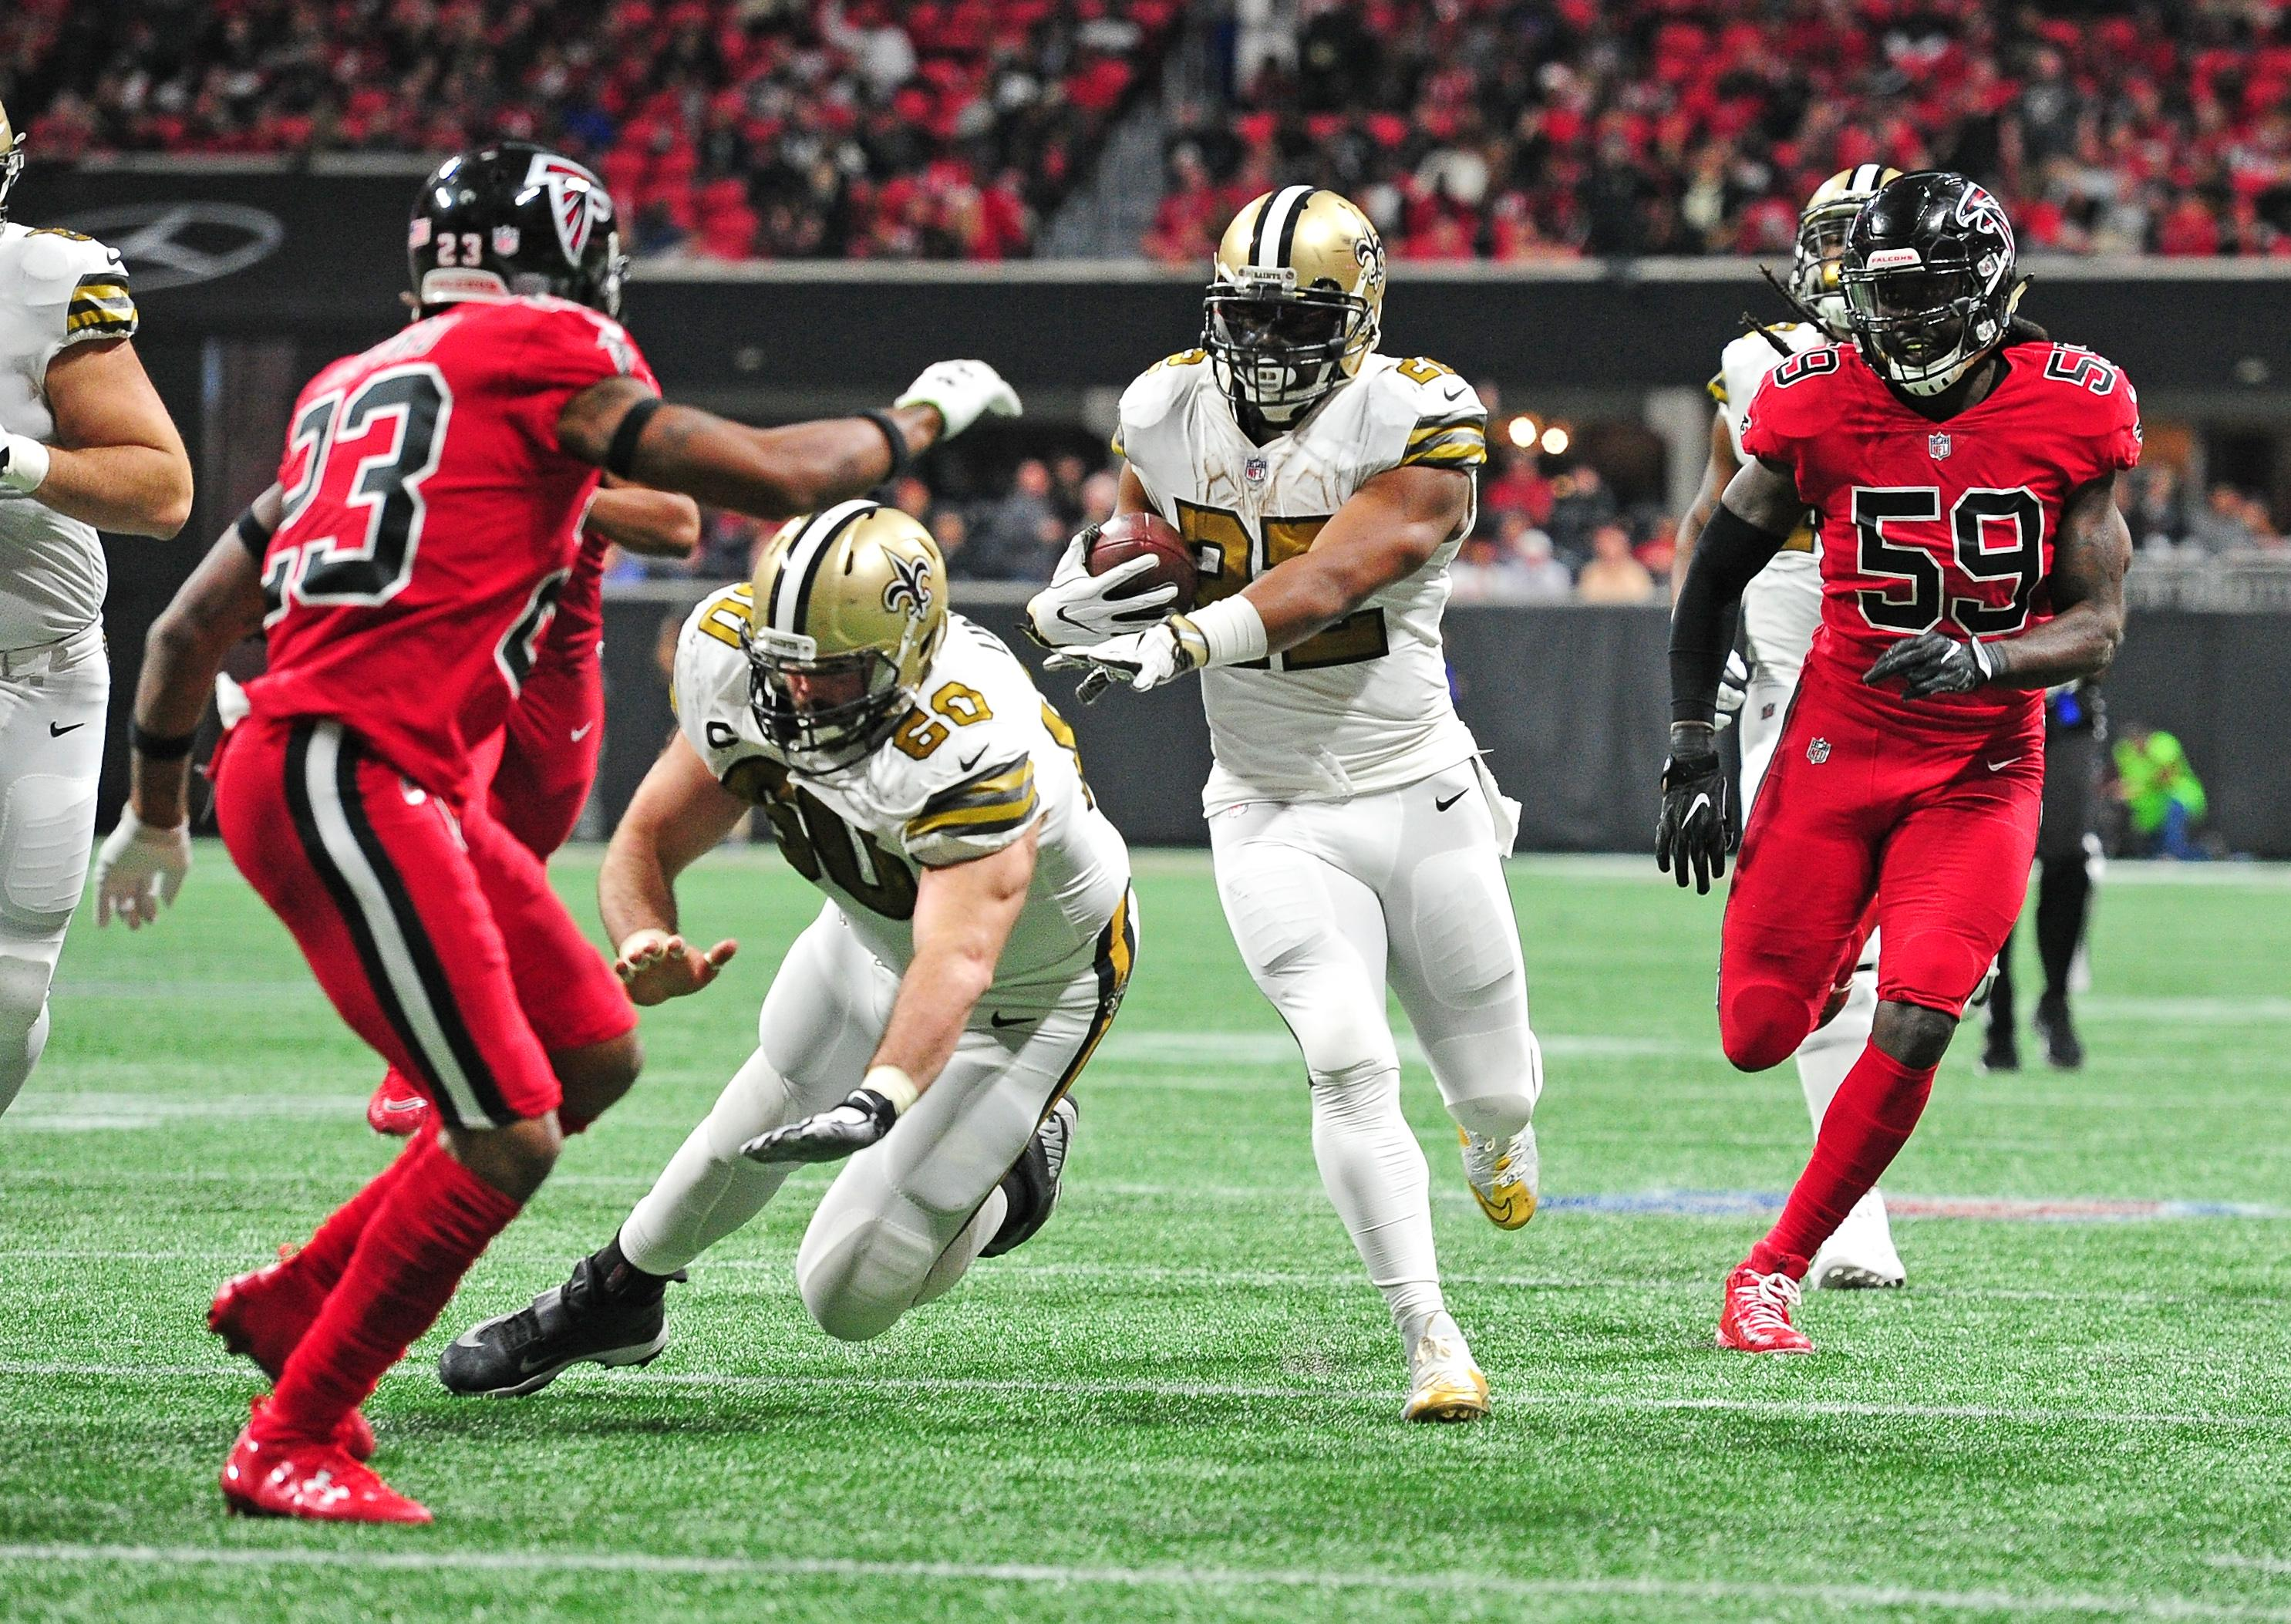 Falcons edge Bucs to remain in NFC South race